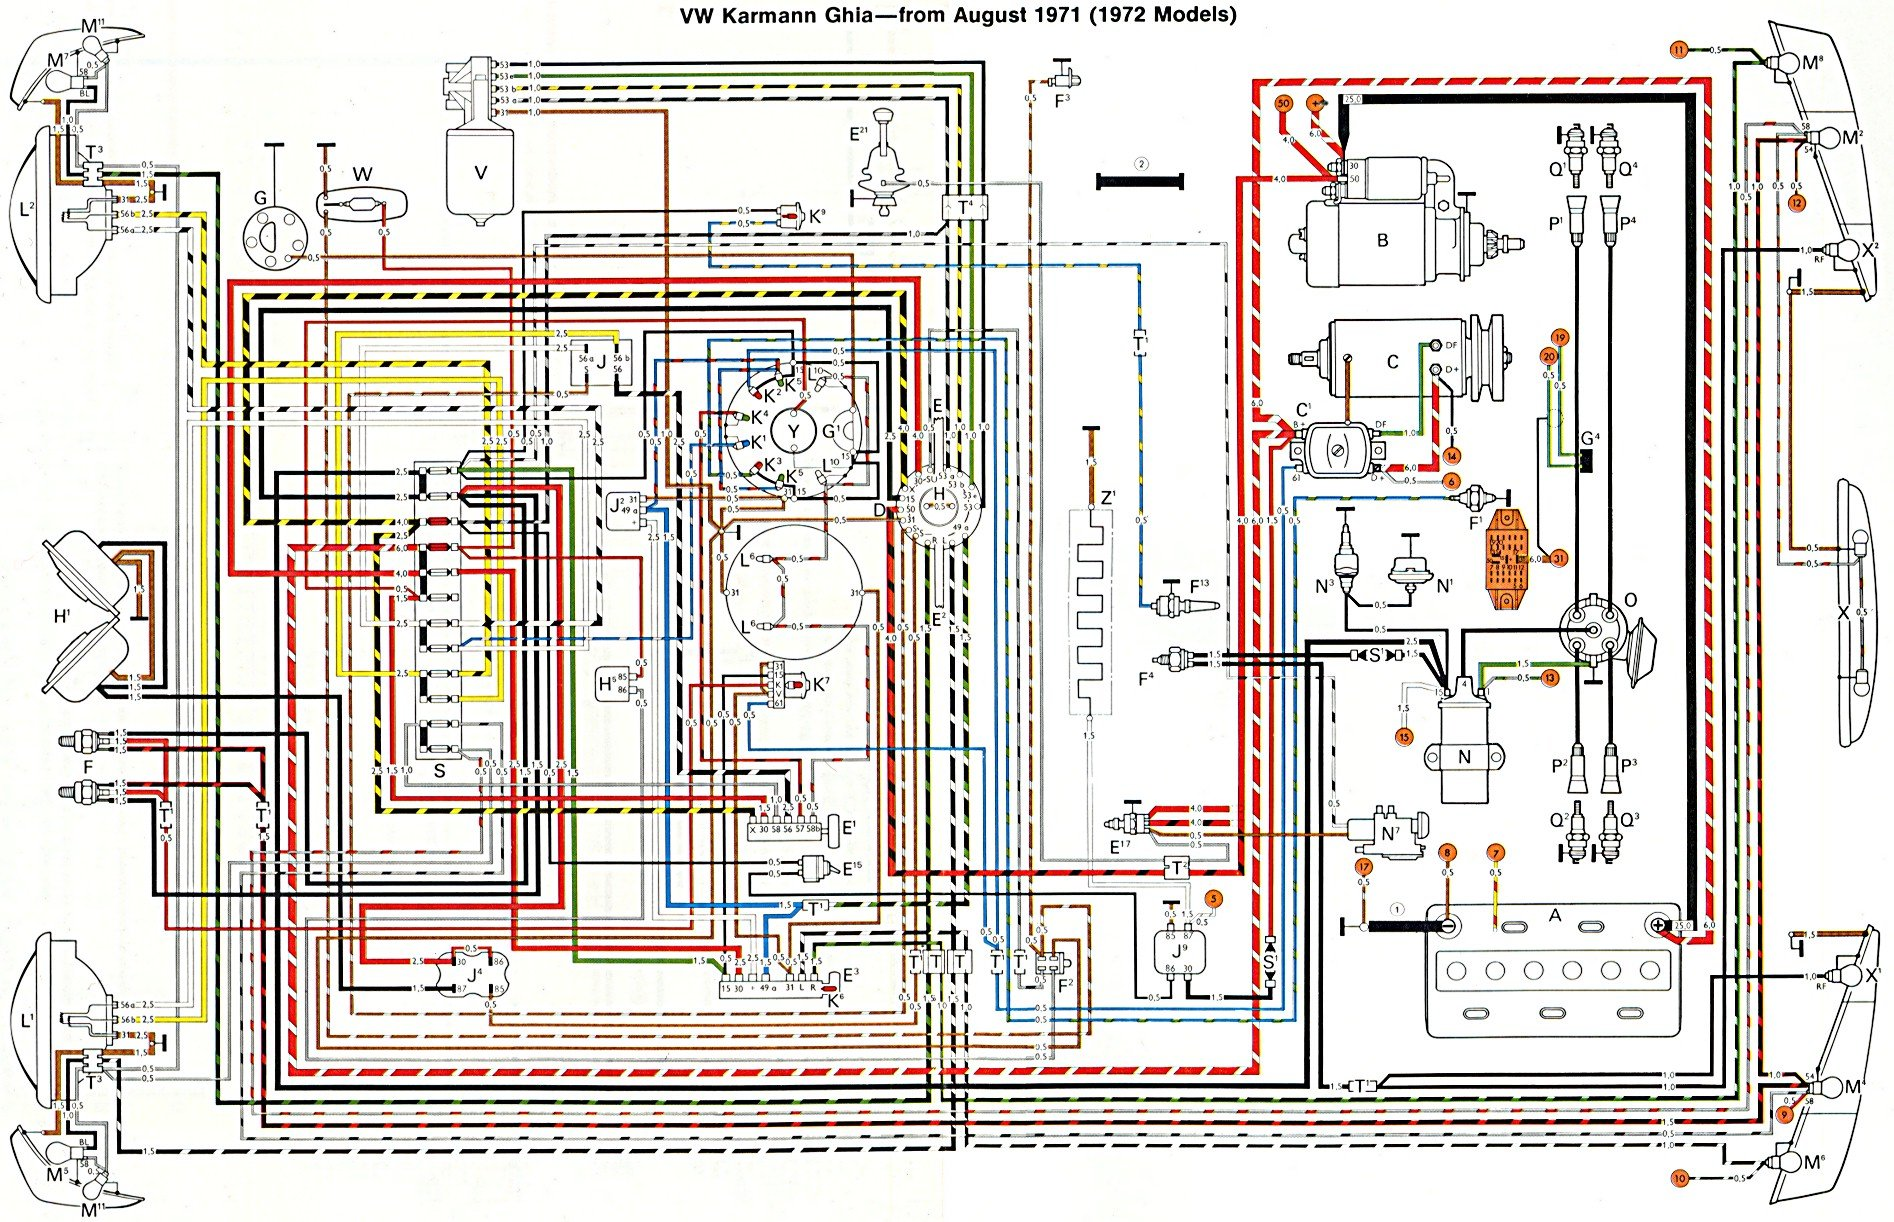 72ghia thesamba com karmann ghia wiring diagrams vw trike wiring harness at cos-gaming.co